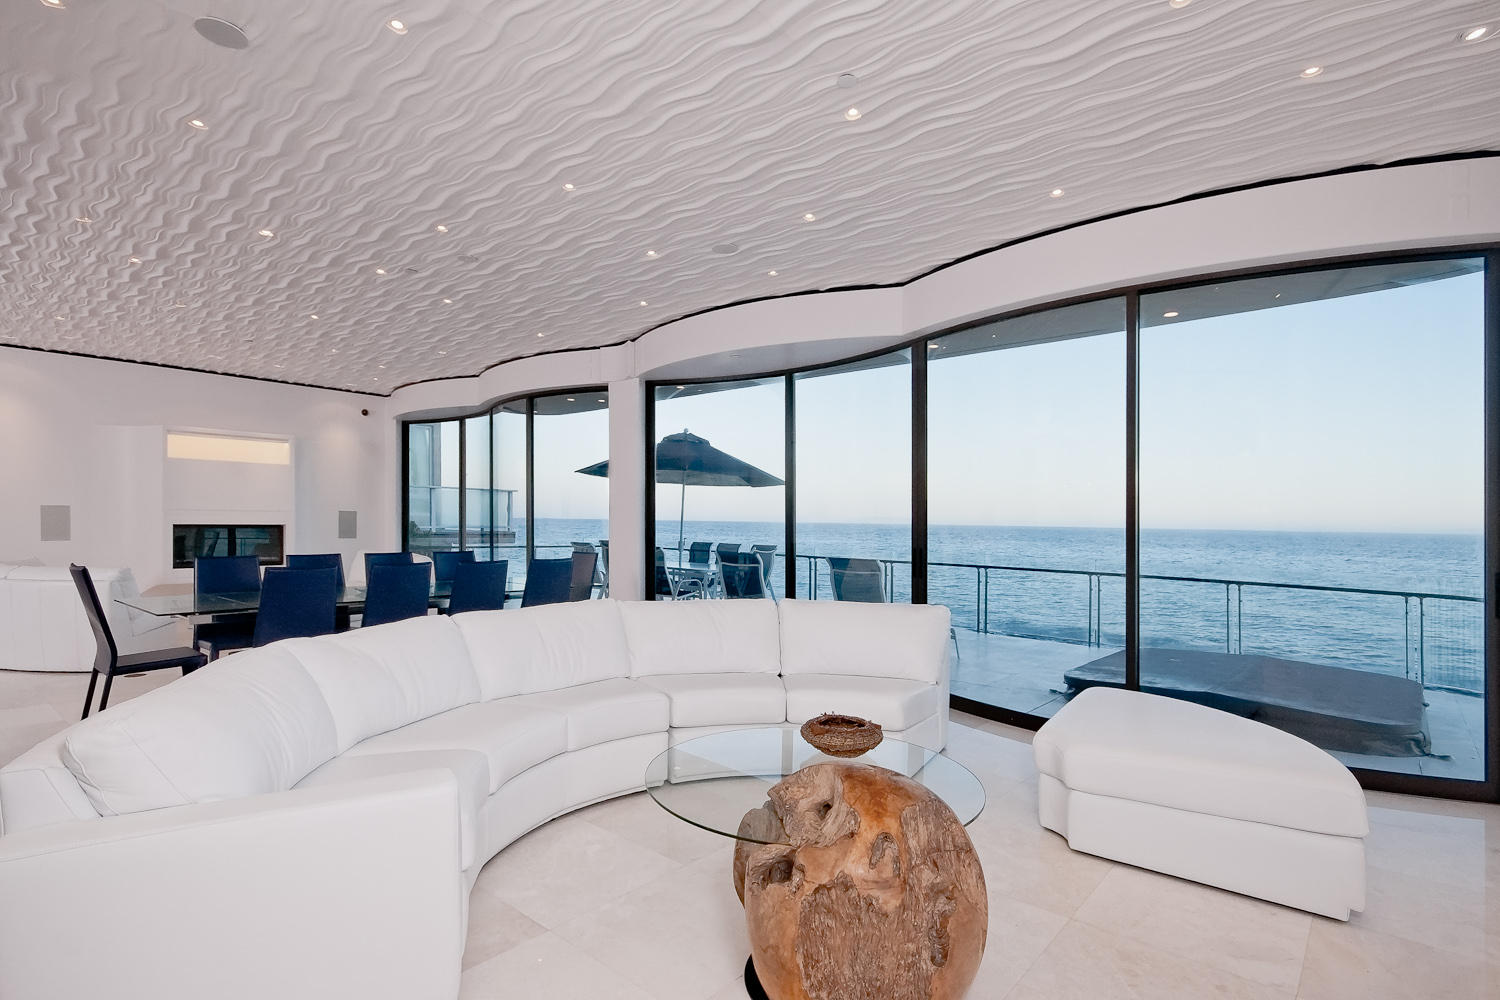 Pristine 3 bedroom beach house for rent in malibu for Malibu mansions for rent